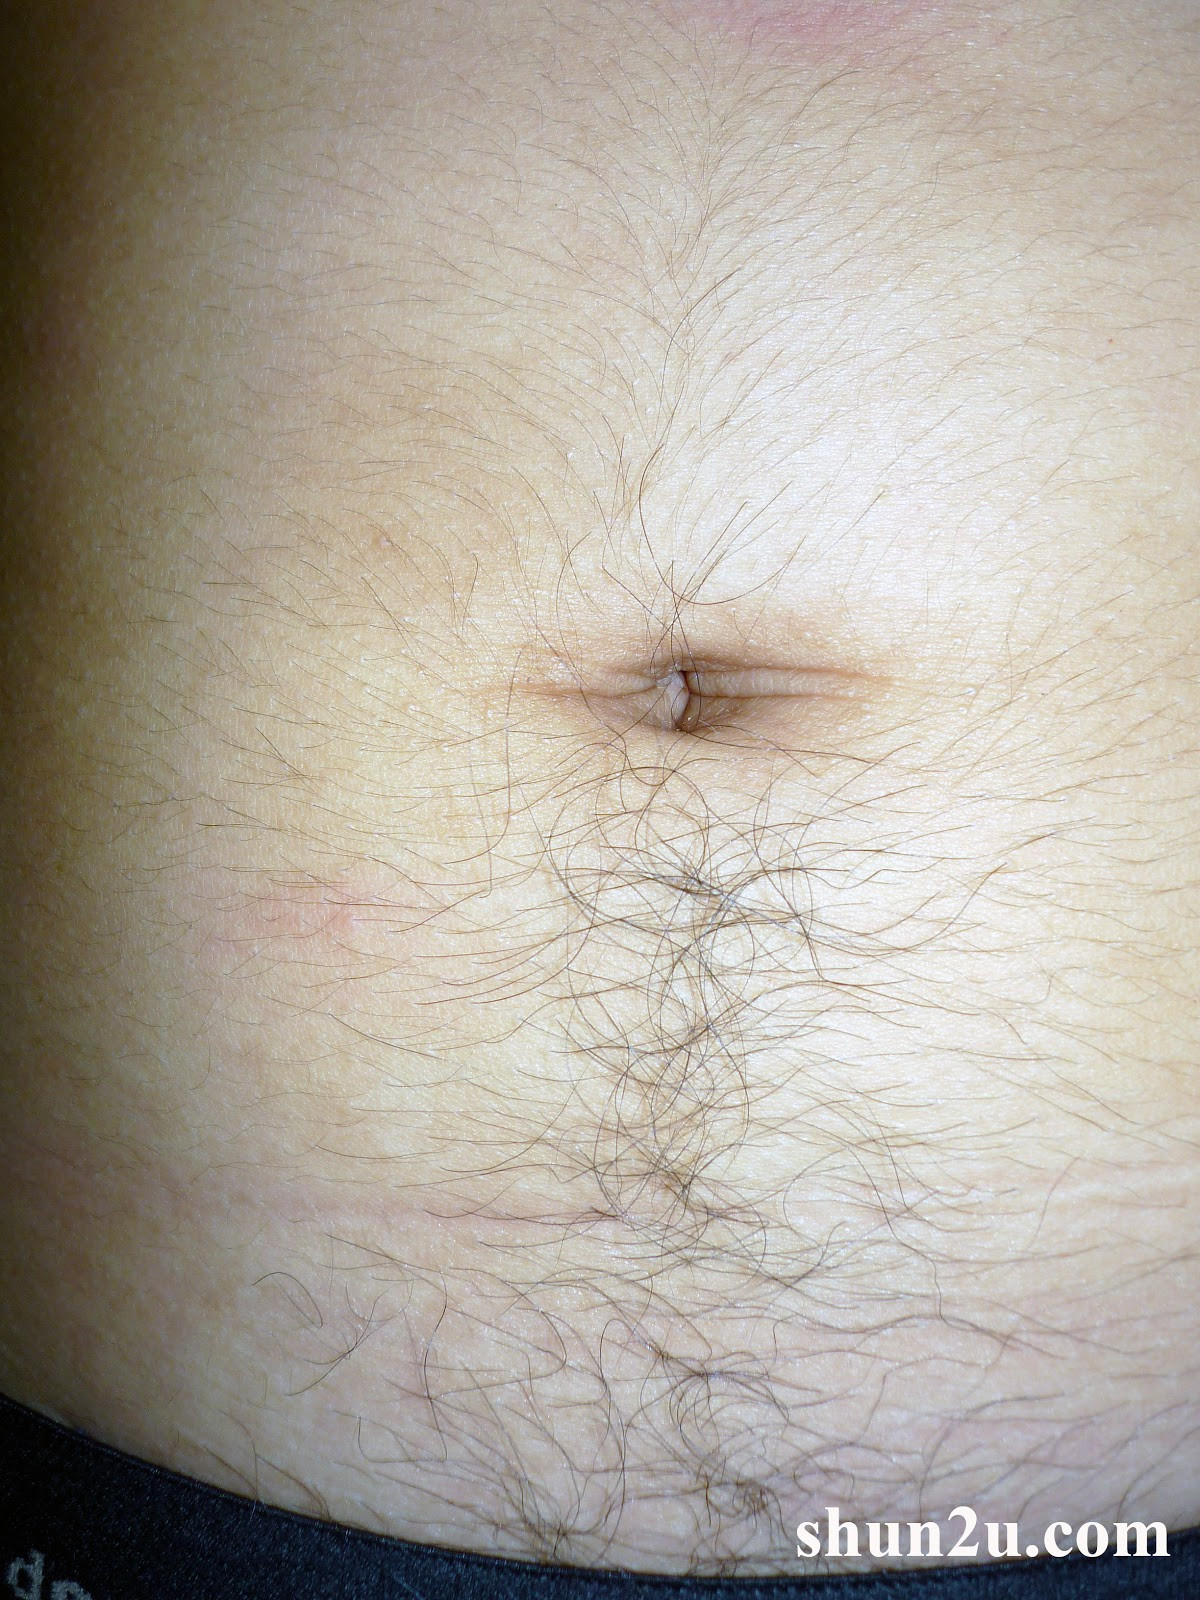 Best ideas about Pubic Hairstyles Female . Save or Pin Pubic Hair Men Now.